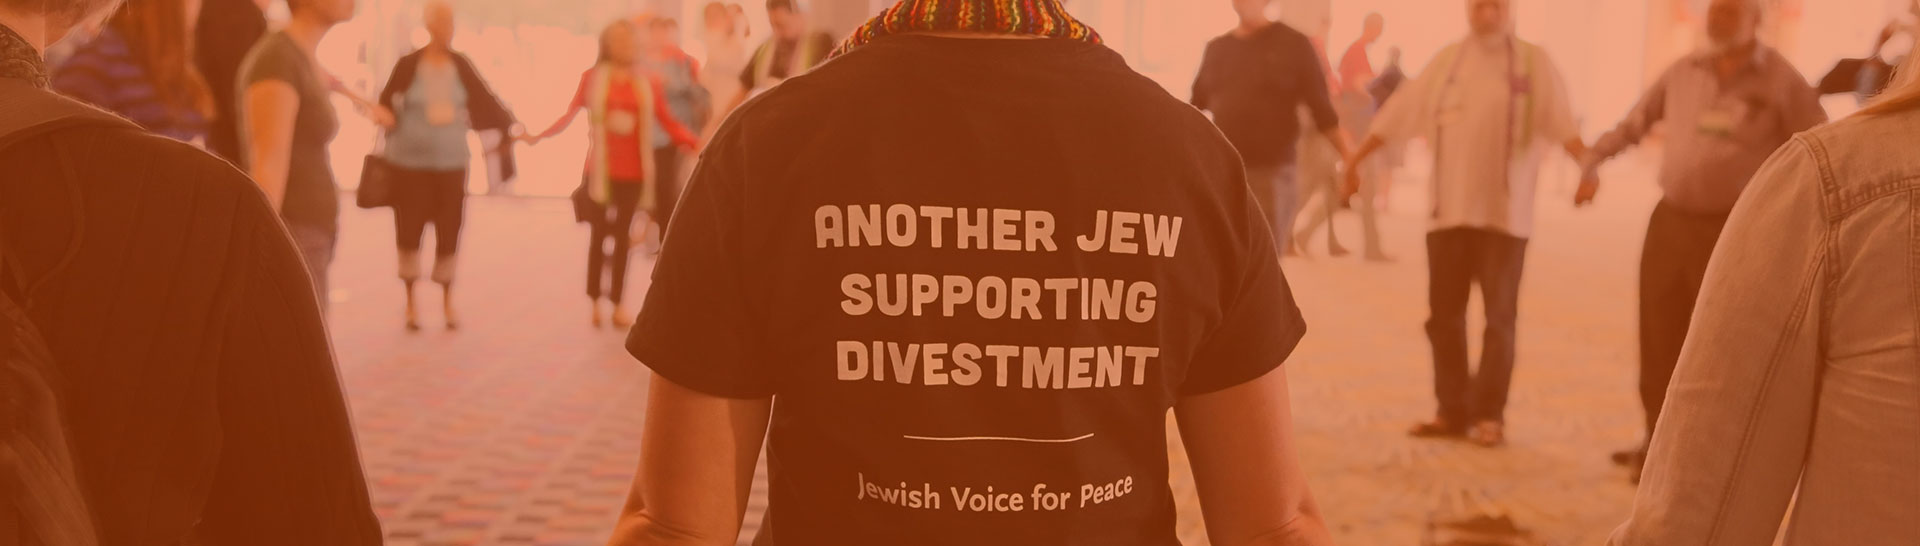 https://jewishvoiceforpeace.org/wp-content/uploads/2015/05/title-another-jew-supporting-divestment.jpg